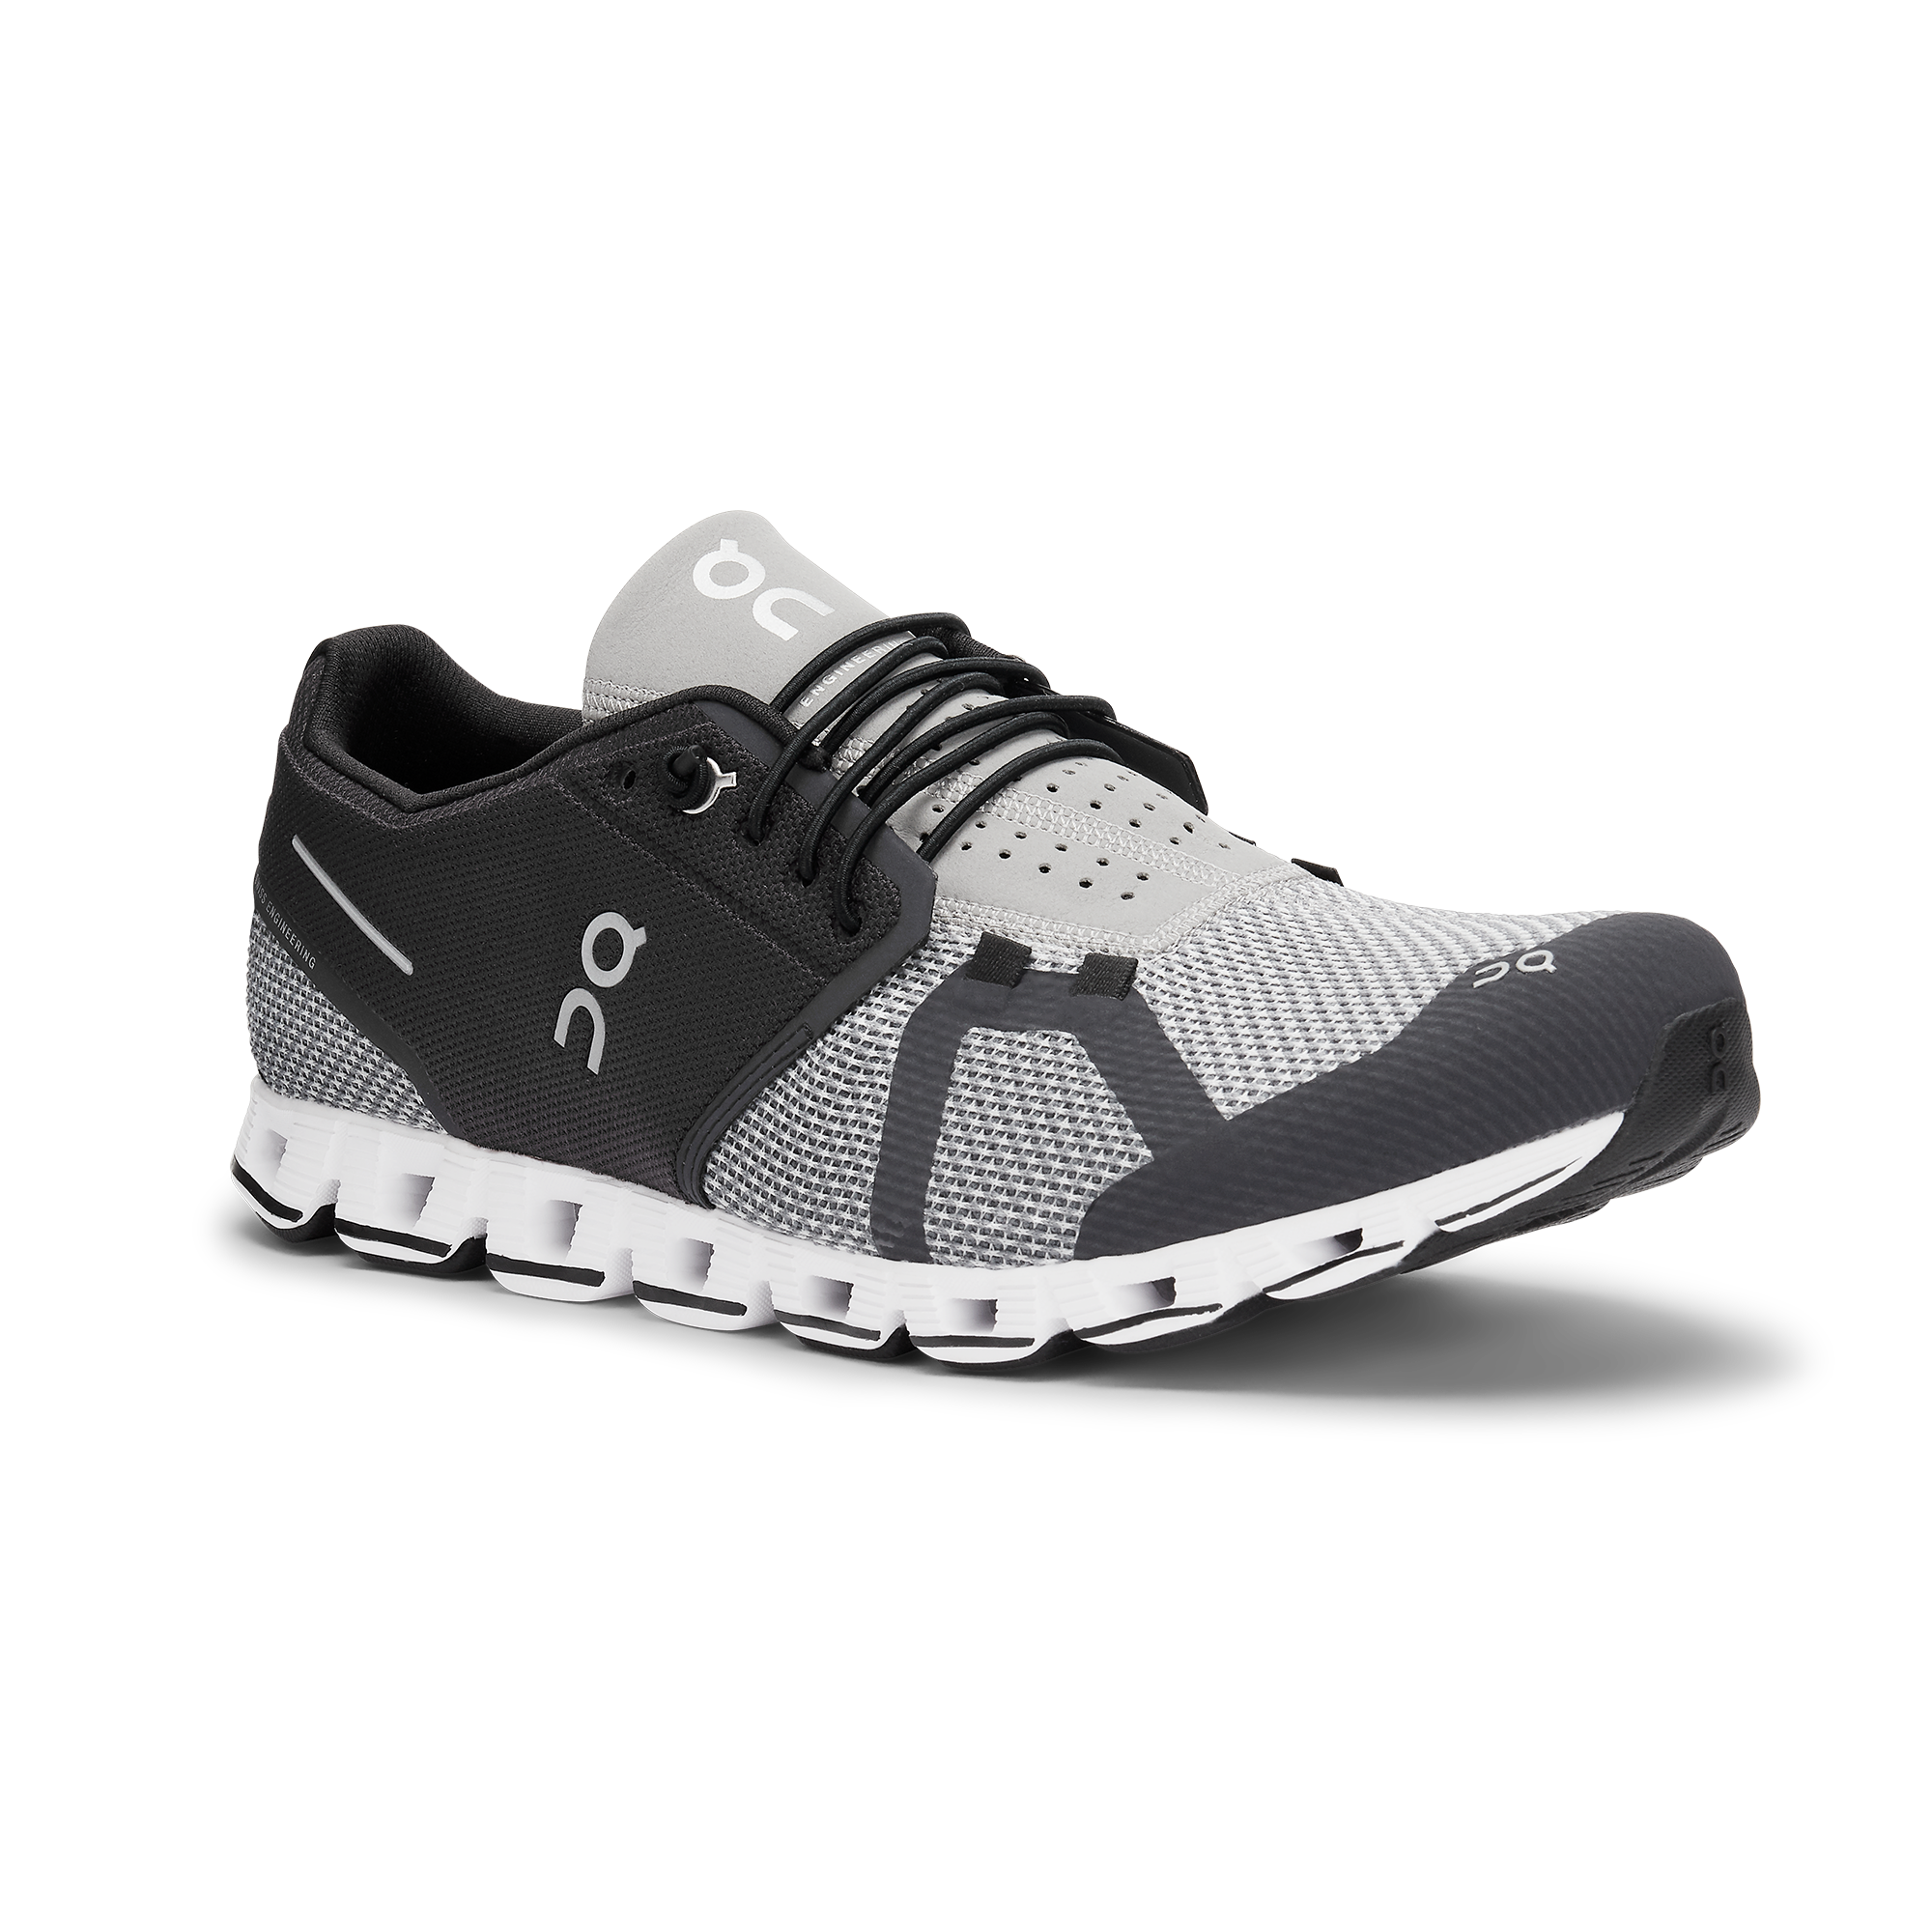 Running Lightweight Cloud Running Lightweight ShoeOn Running ShoeOn Lightweight Cloud Cloud cTJ3F1lK